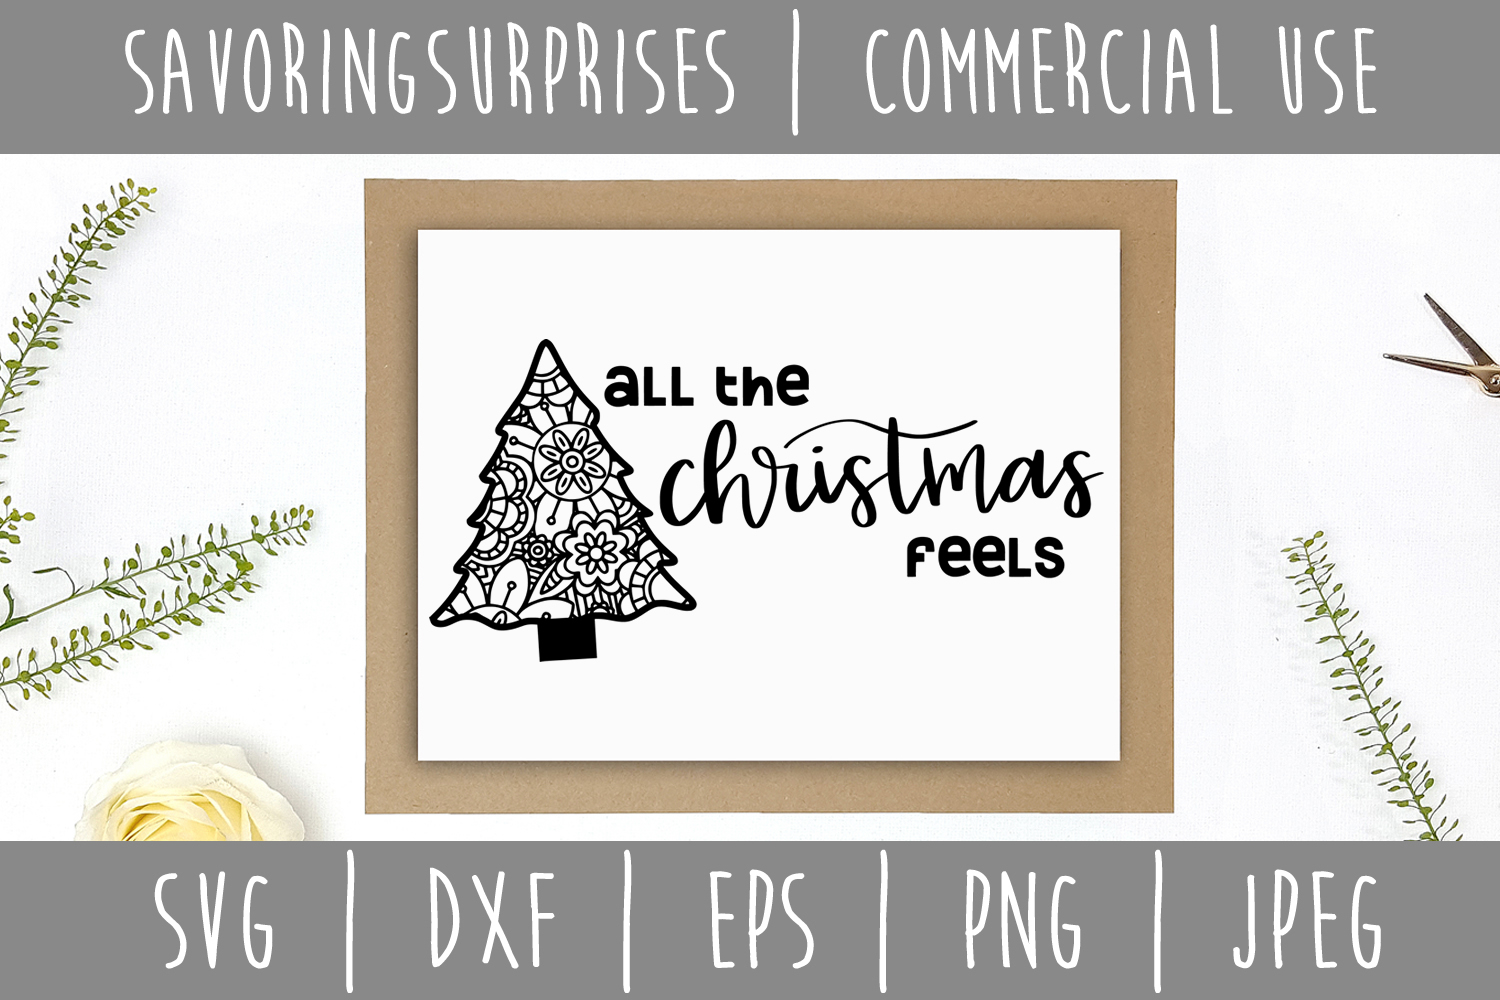 All the Christmas Feels SVG, DXF, EPS, PNG JPEG example image 3